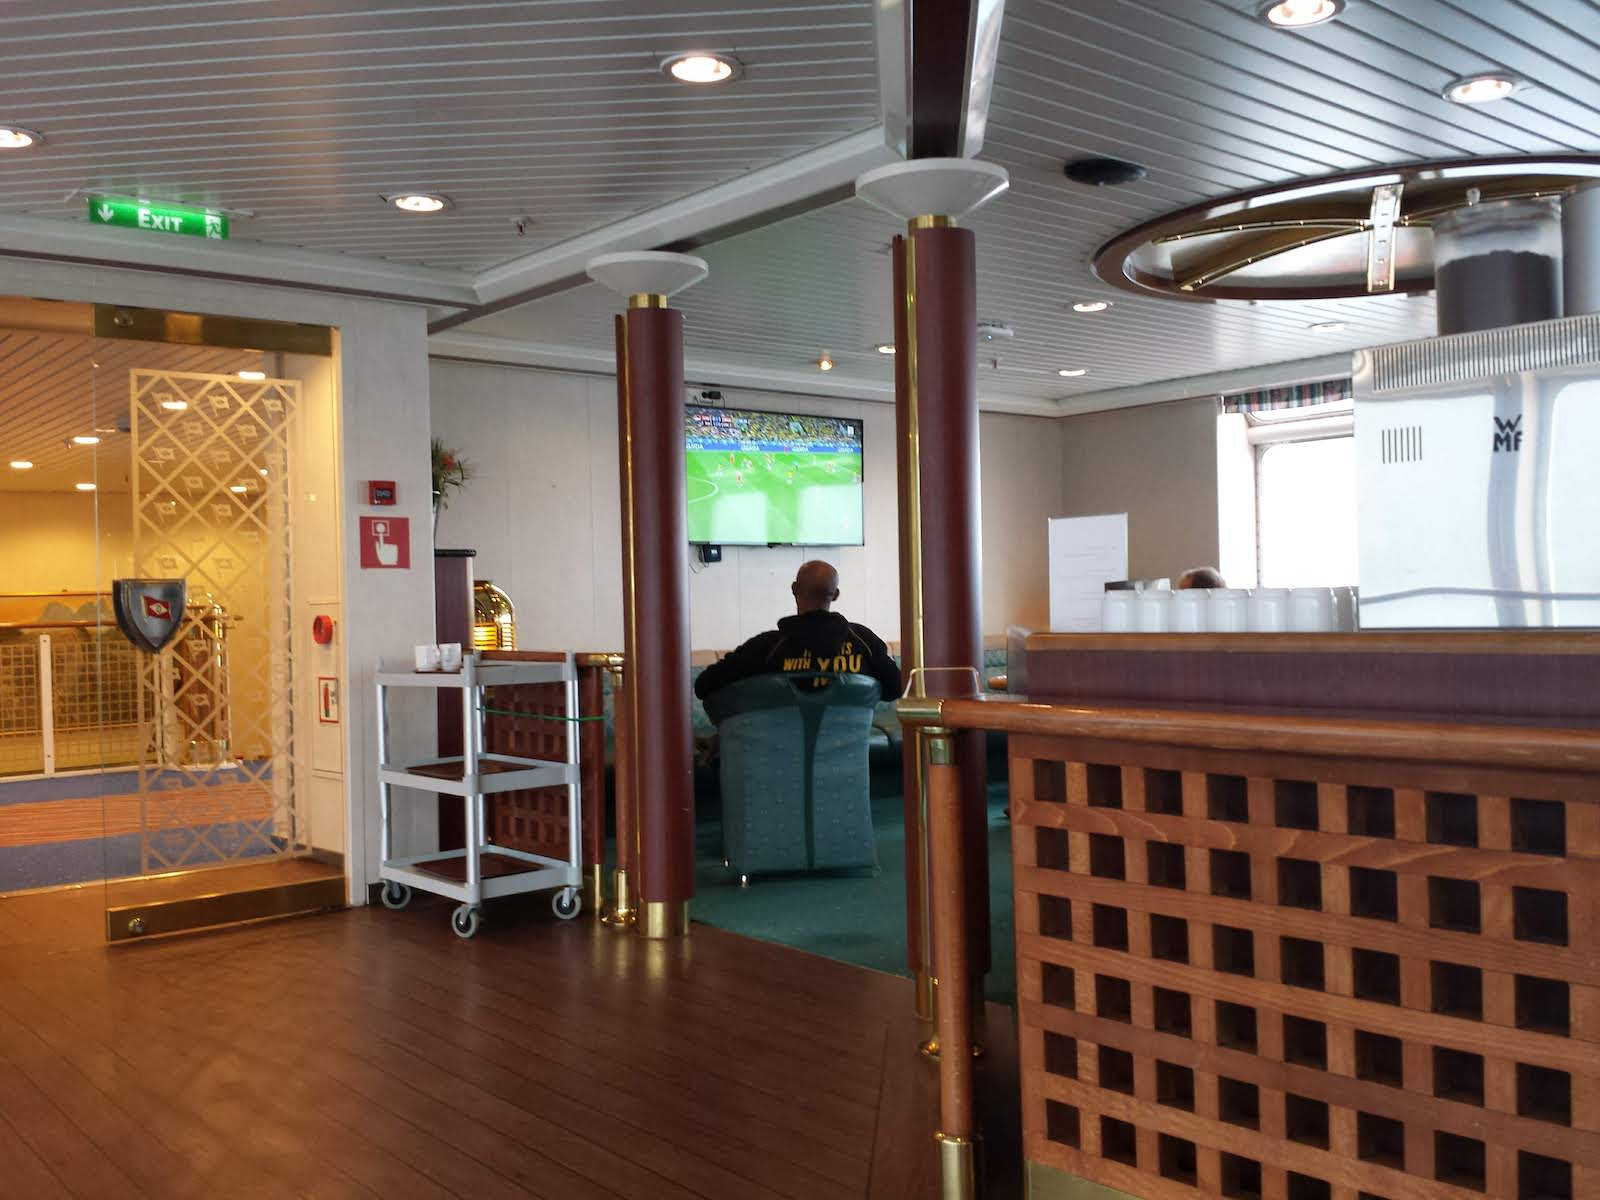 Life onboard the ship watching soccer game